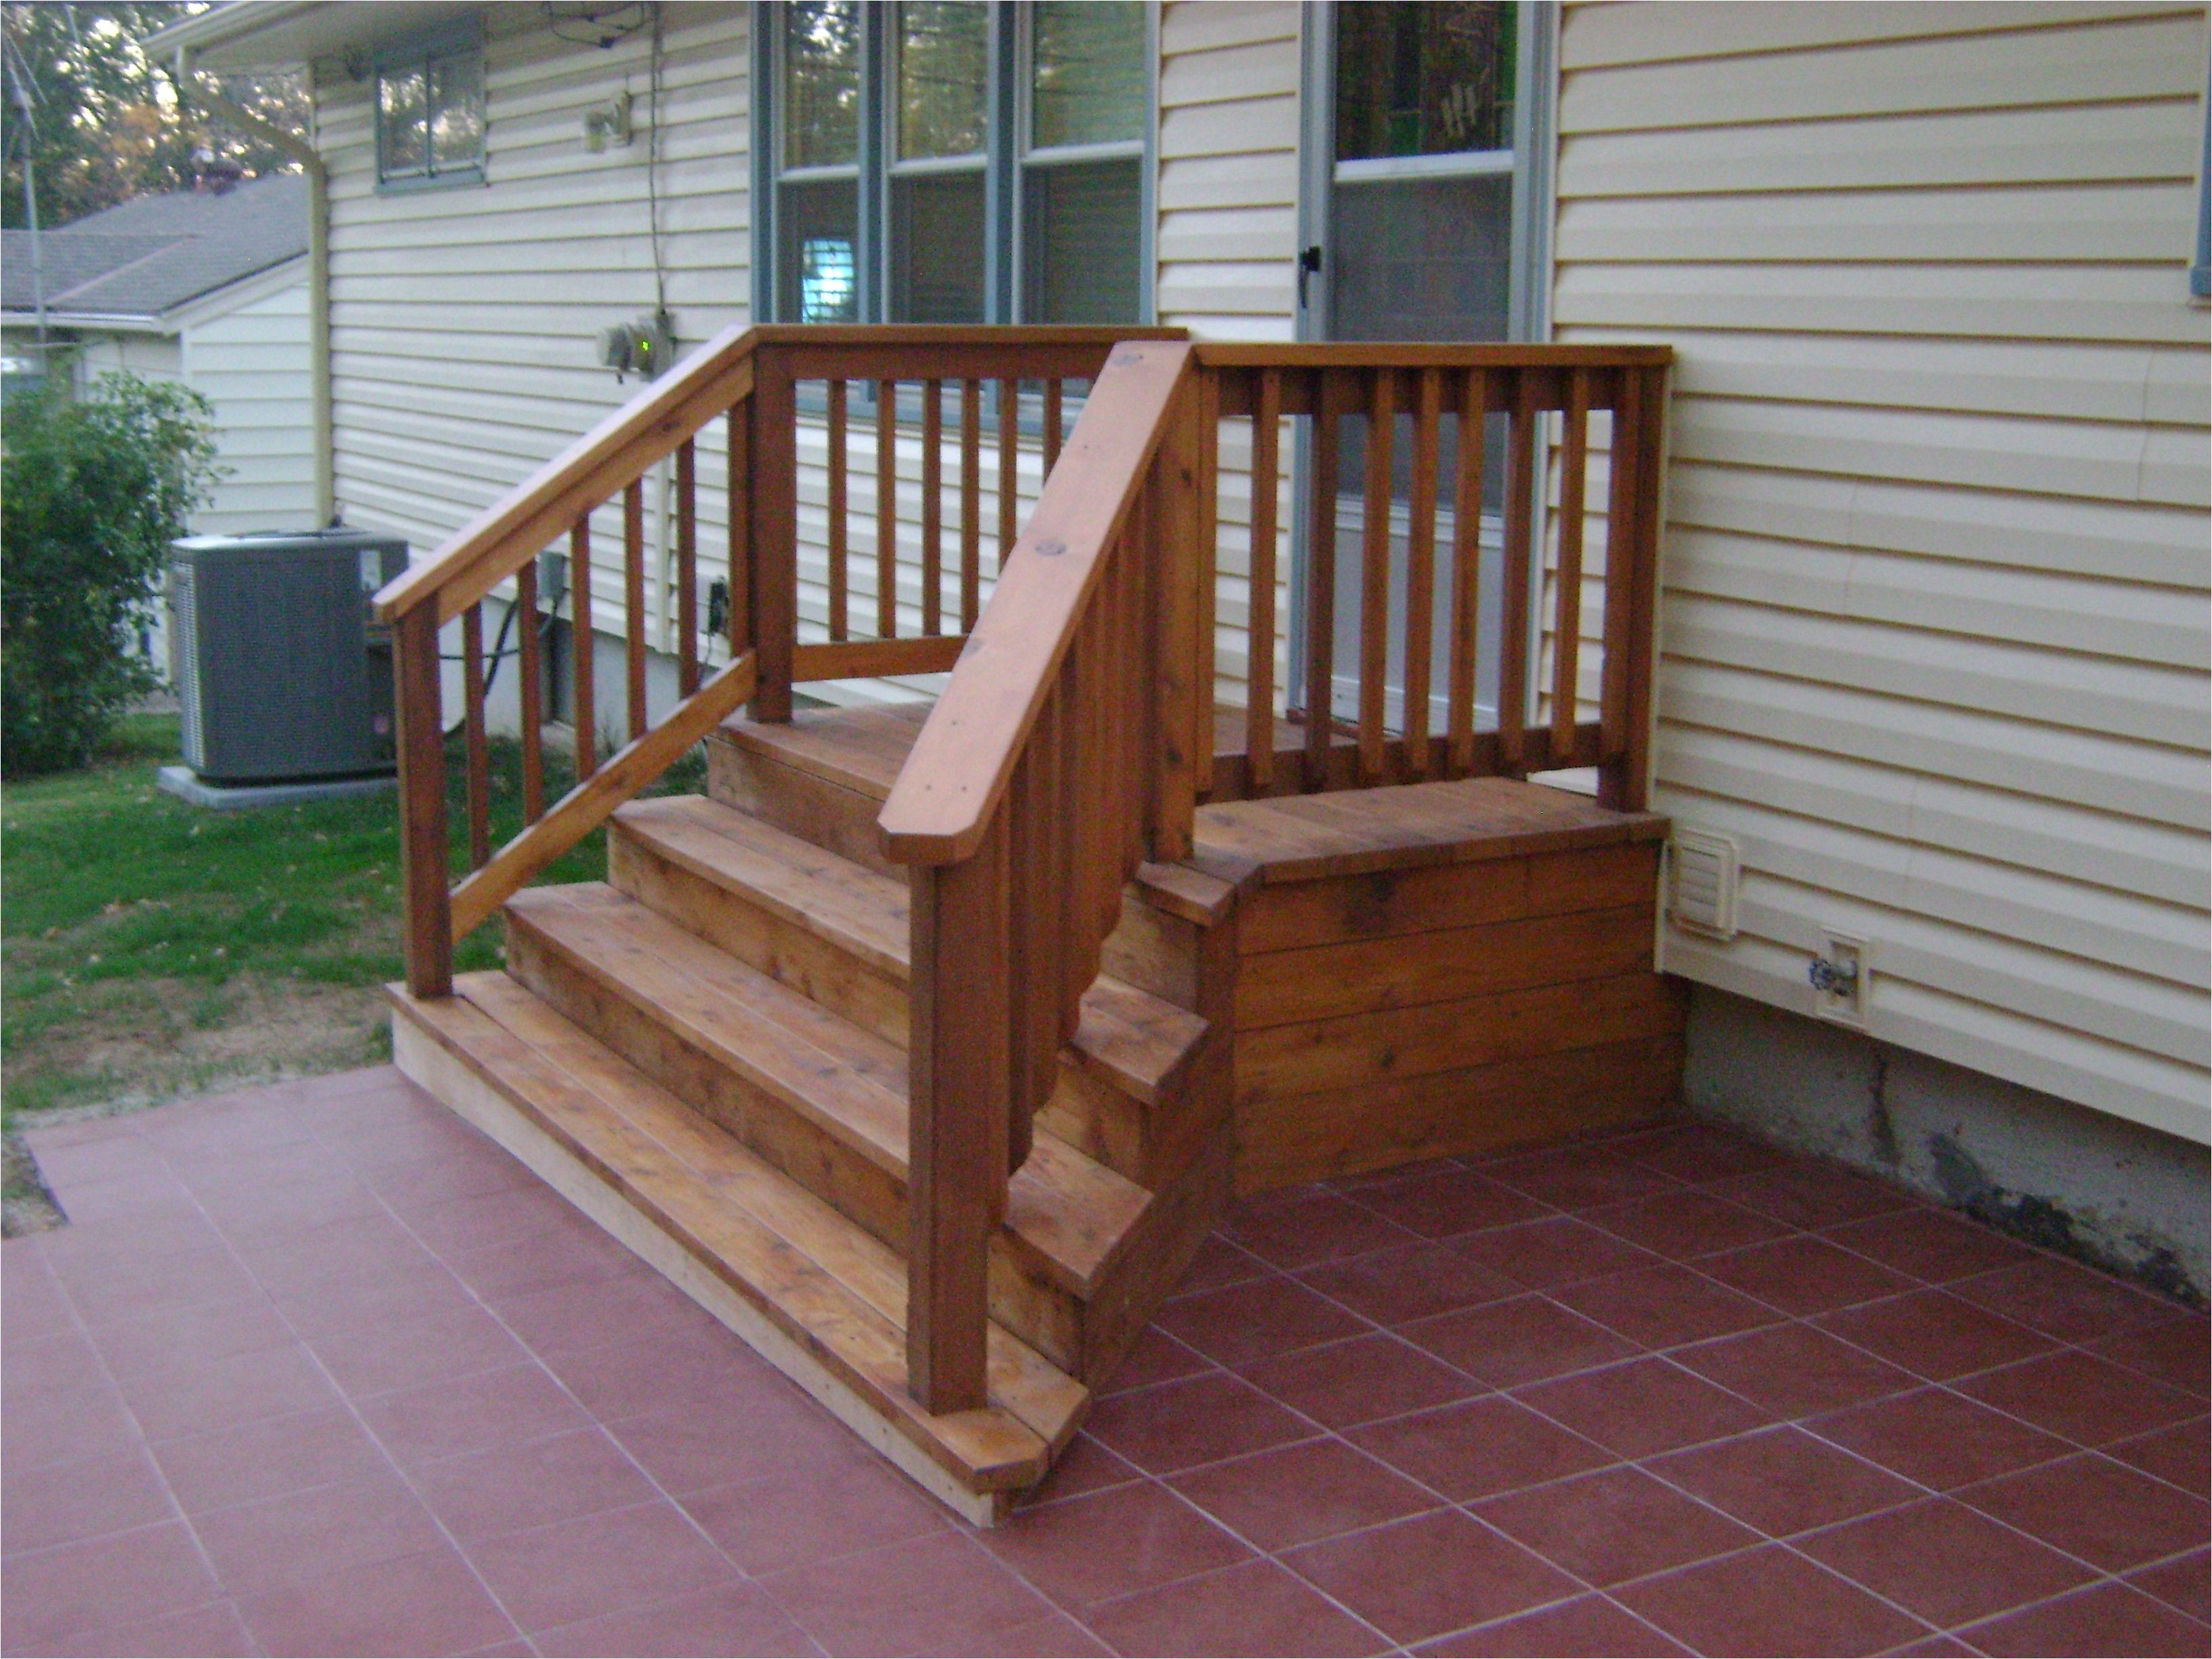 small deck ideas deck backyar design idesa tags small deck ideas on a budget small deck diy backyard ideas deck decorating ideas